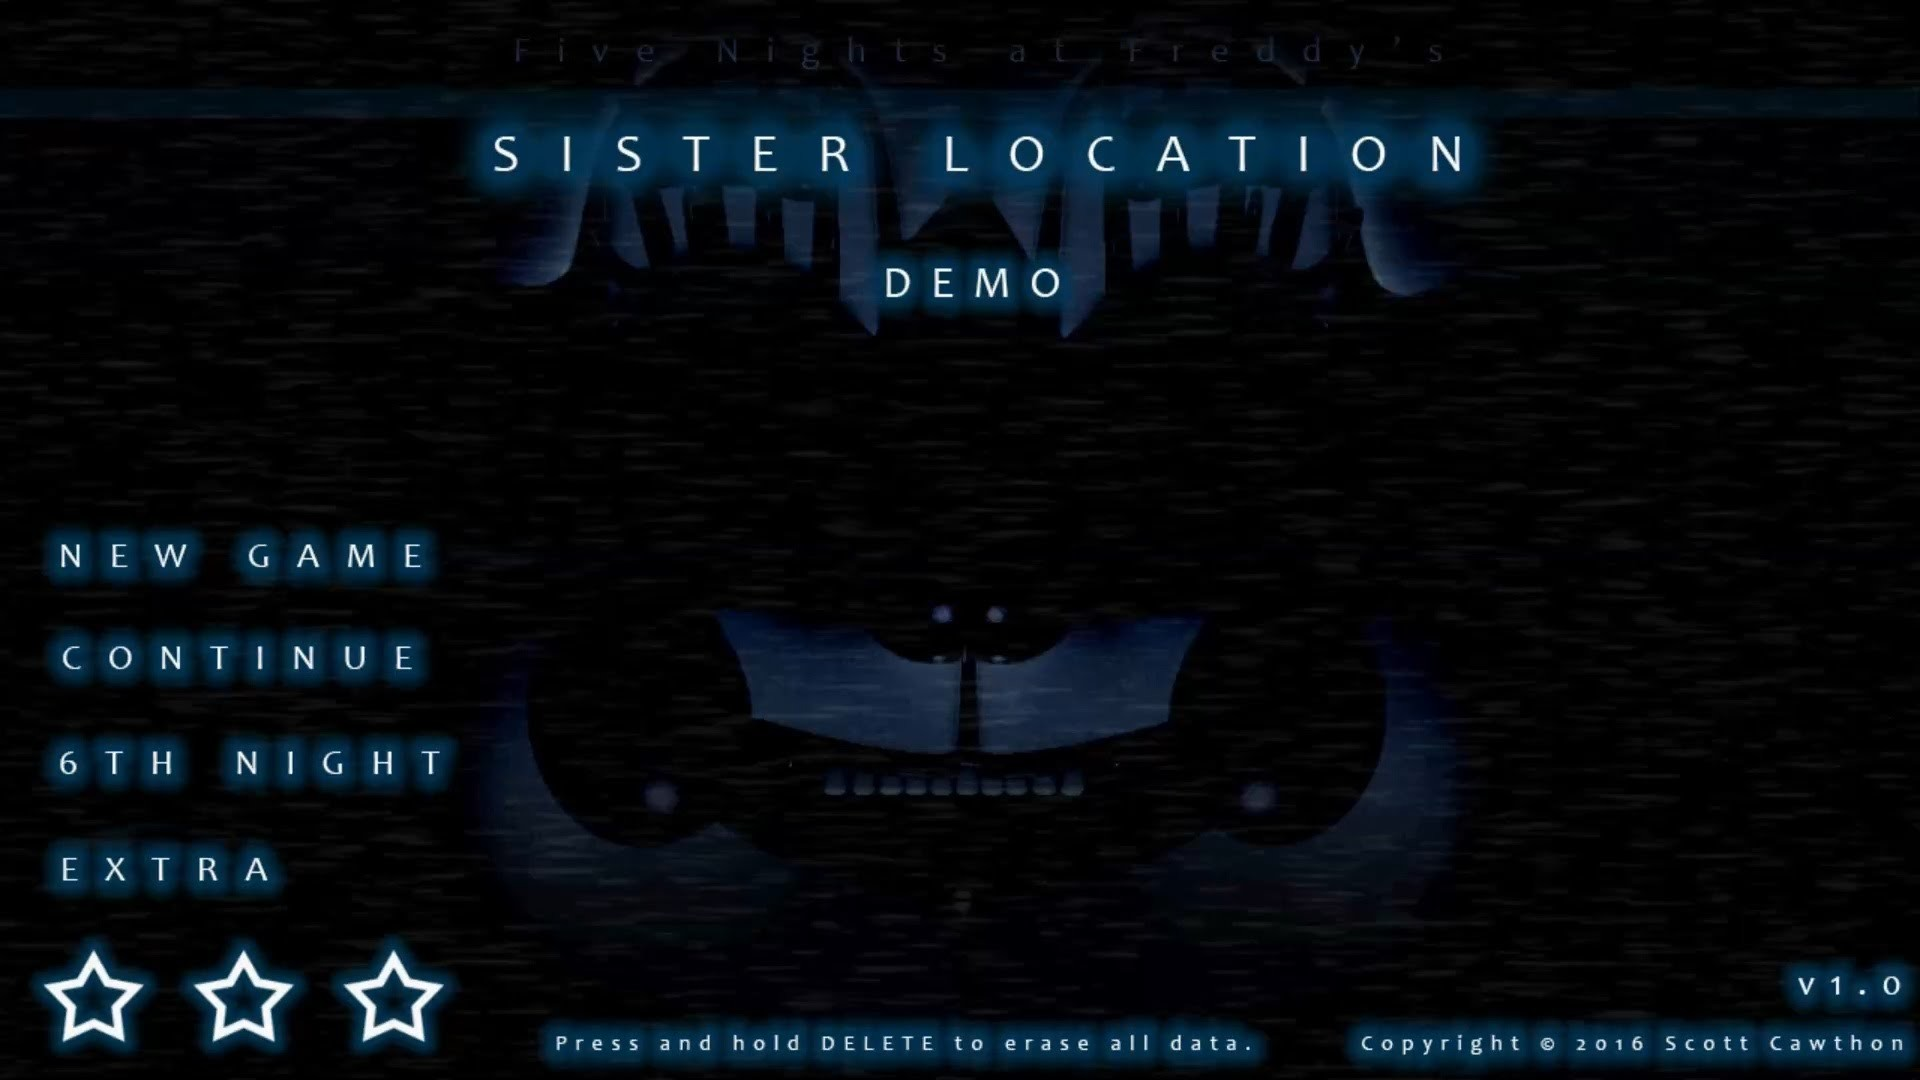 Five Nights at Freddy's 5 (FNAF 5) Sister Location Gameplay Demo Teaser Fan  Made – YouTube